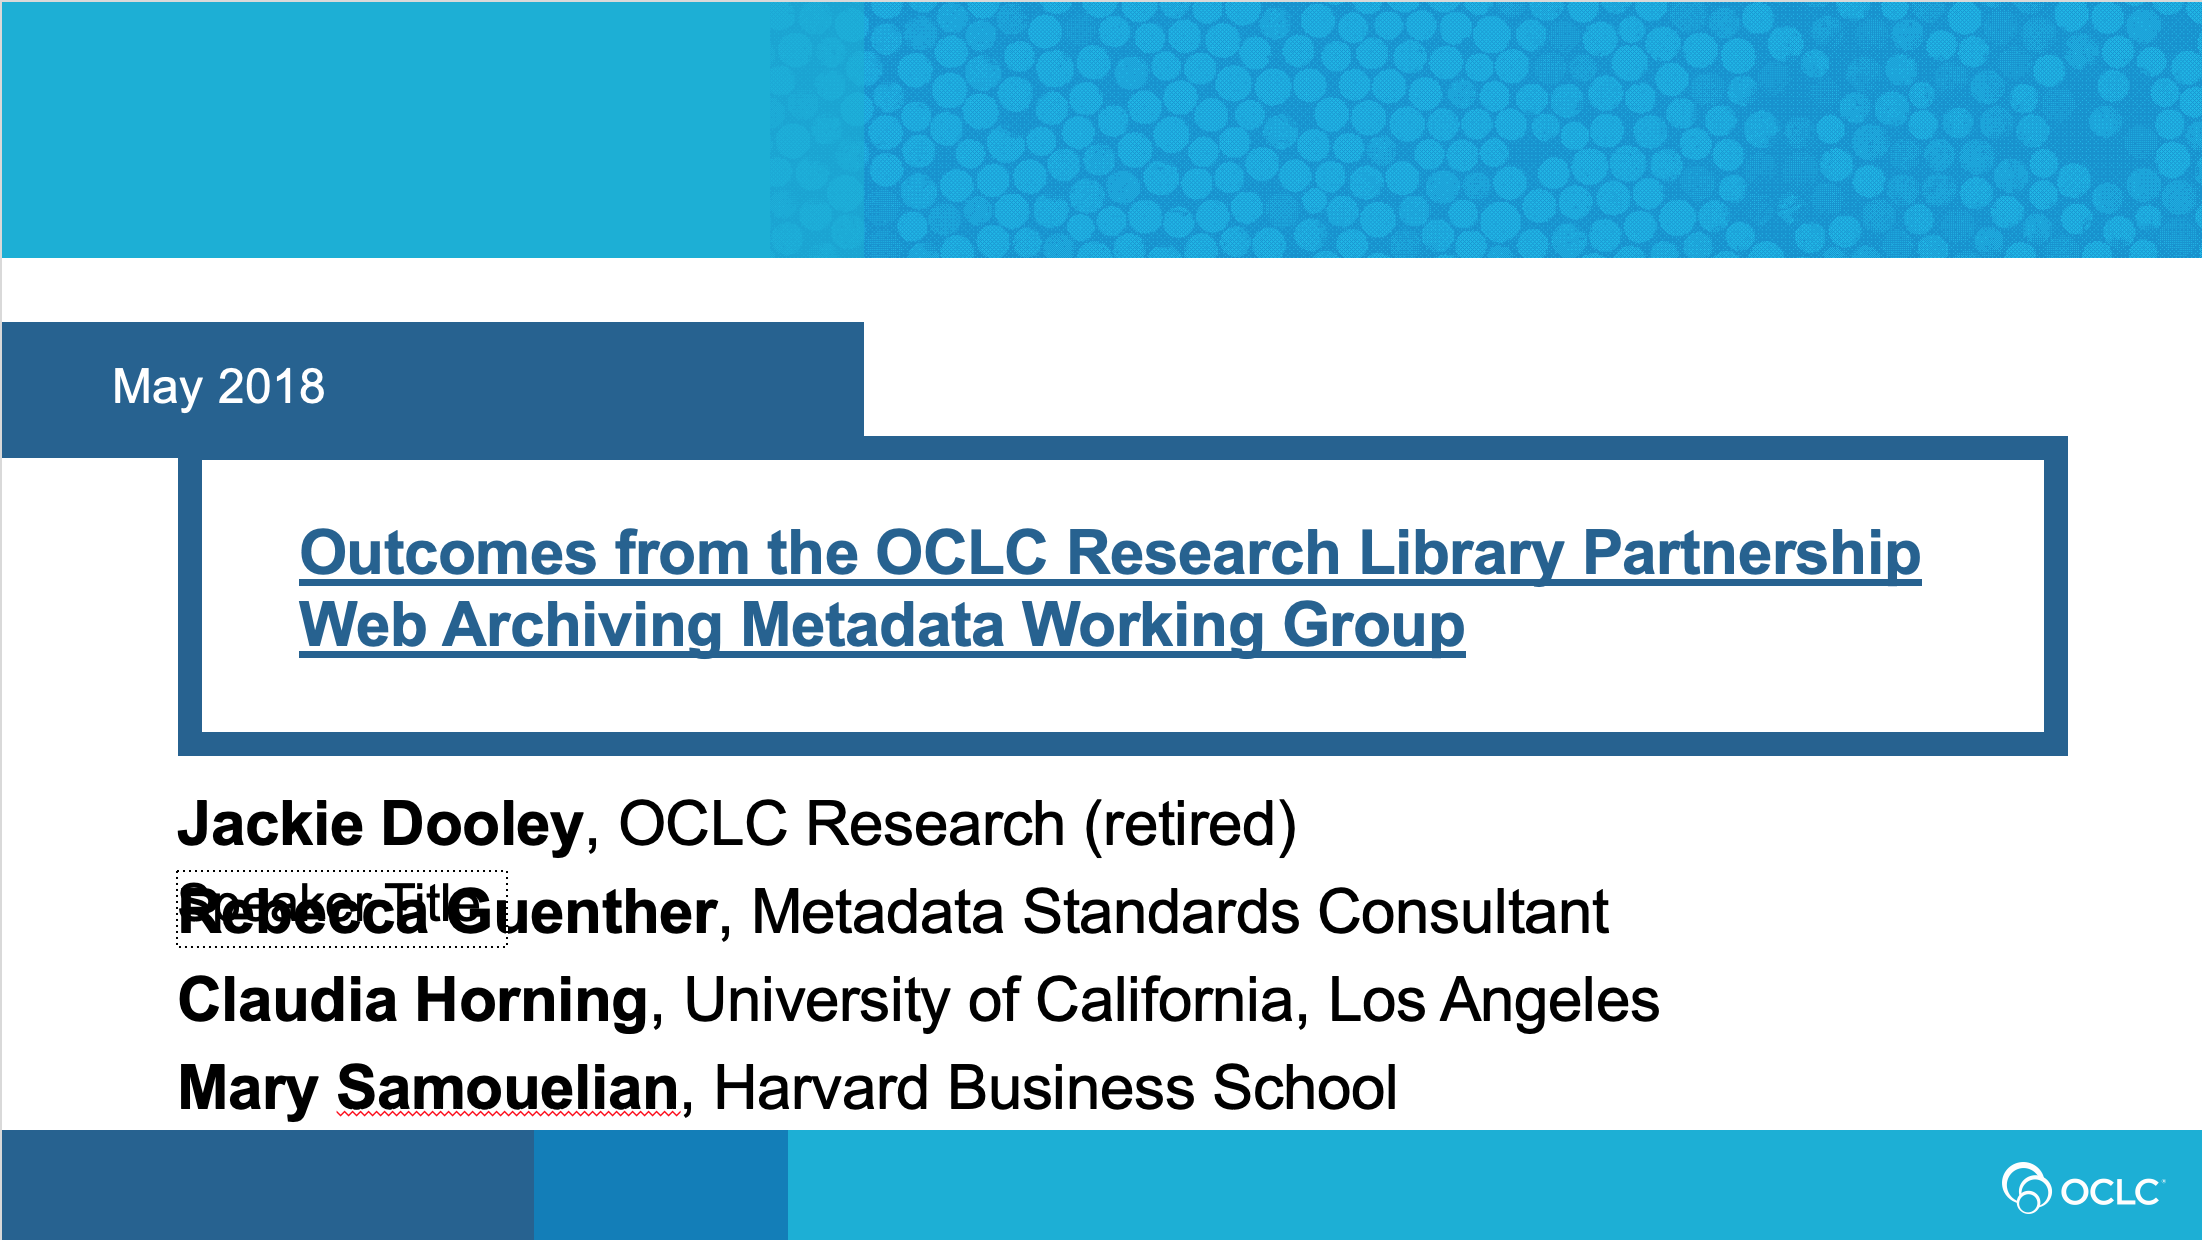 Outcomes from the OCLC Research Library Partnership Web Archiving Metadata Working Group